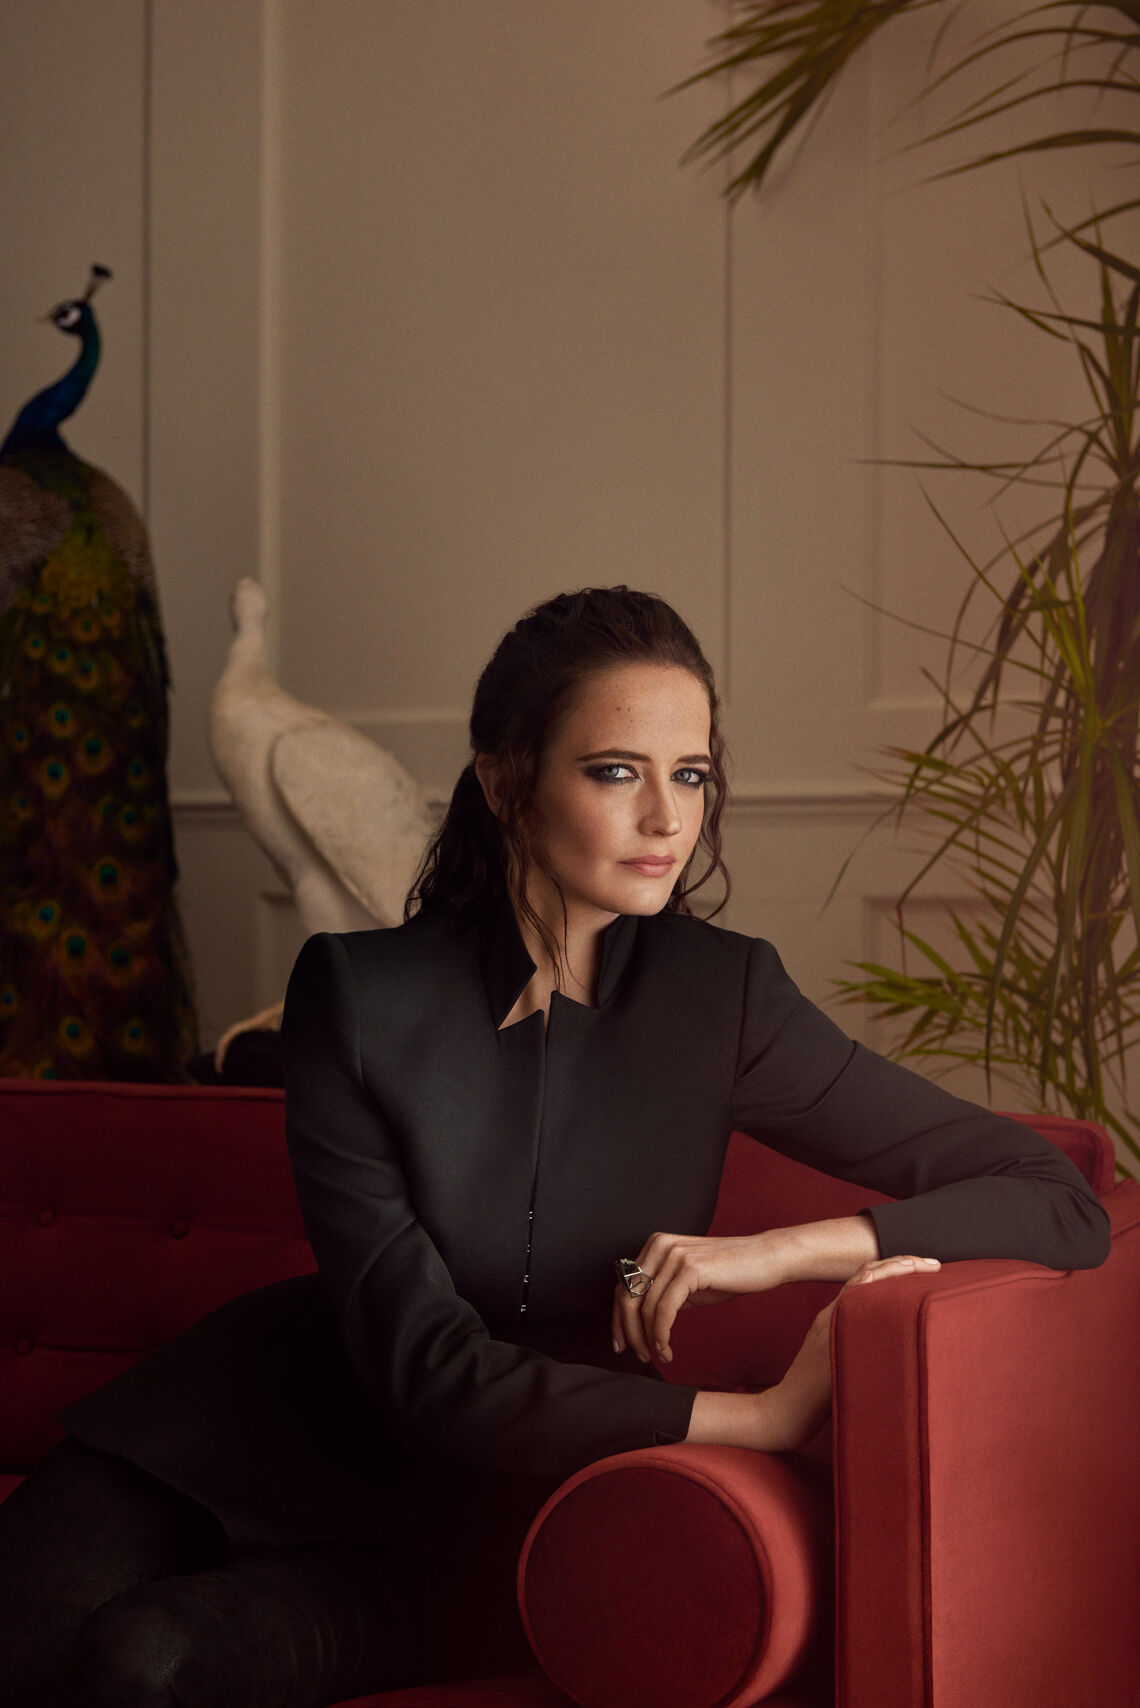 Eva Green wearing a black blouse siting on a red sofa